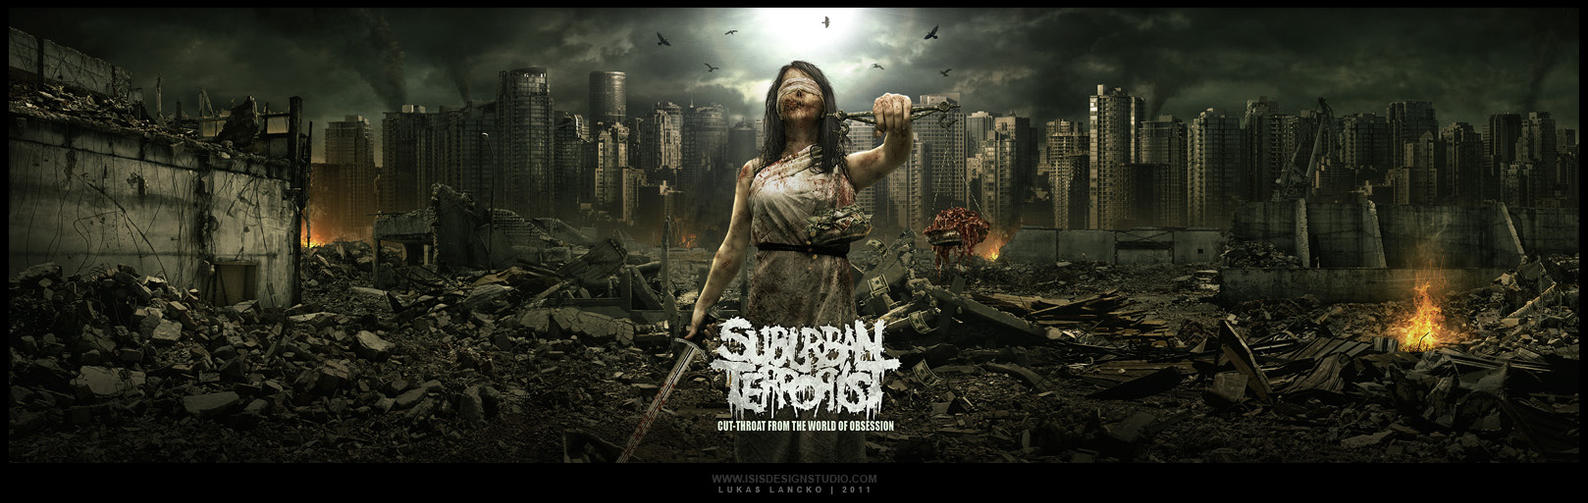 SUBURBAN TERRORIST mp by isisdesignstudio